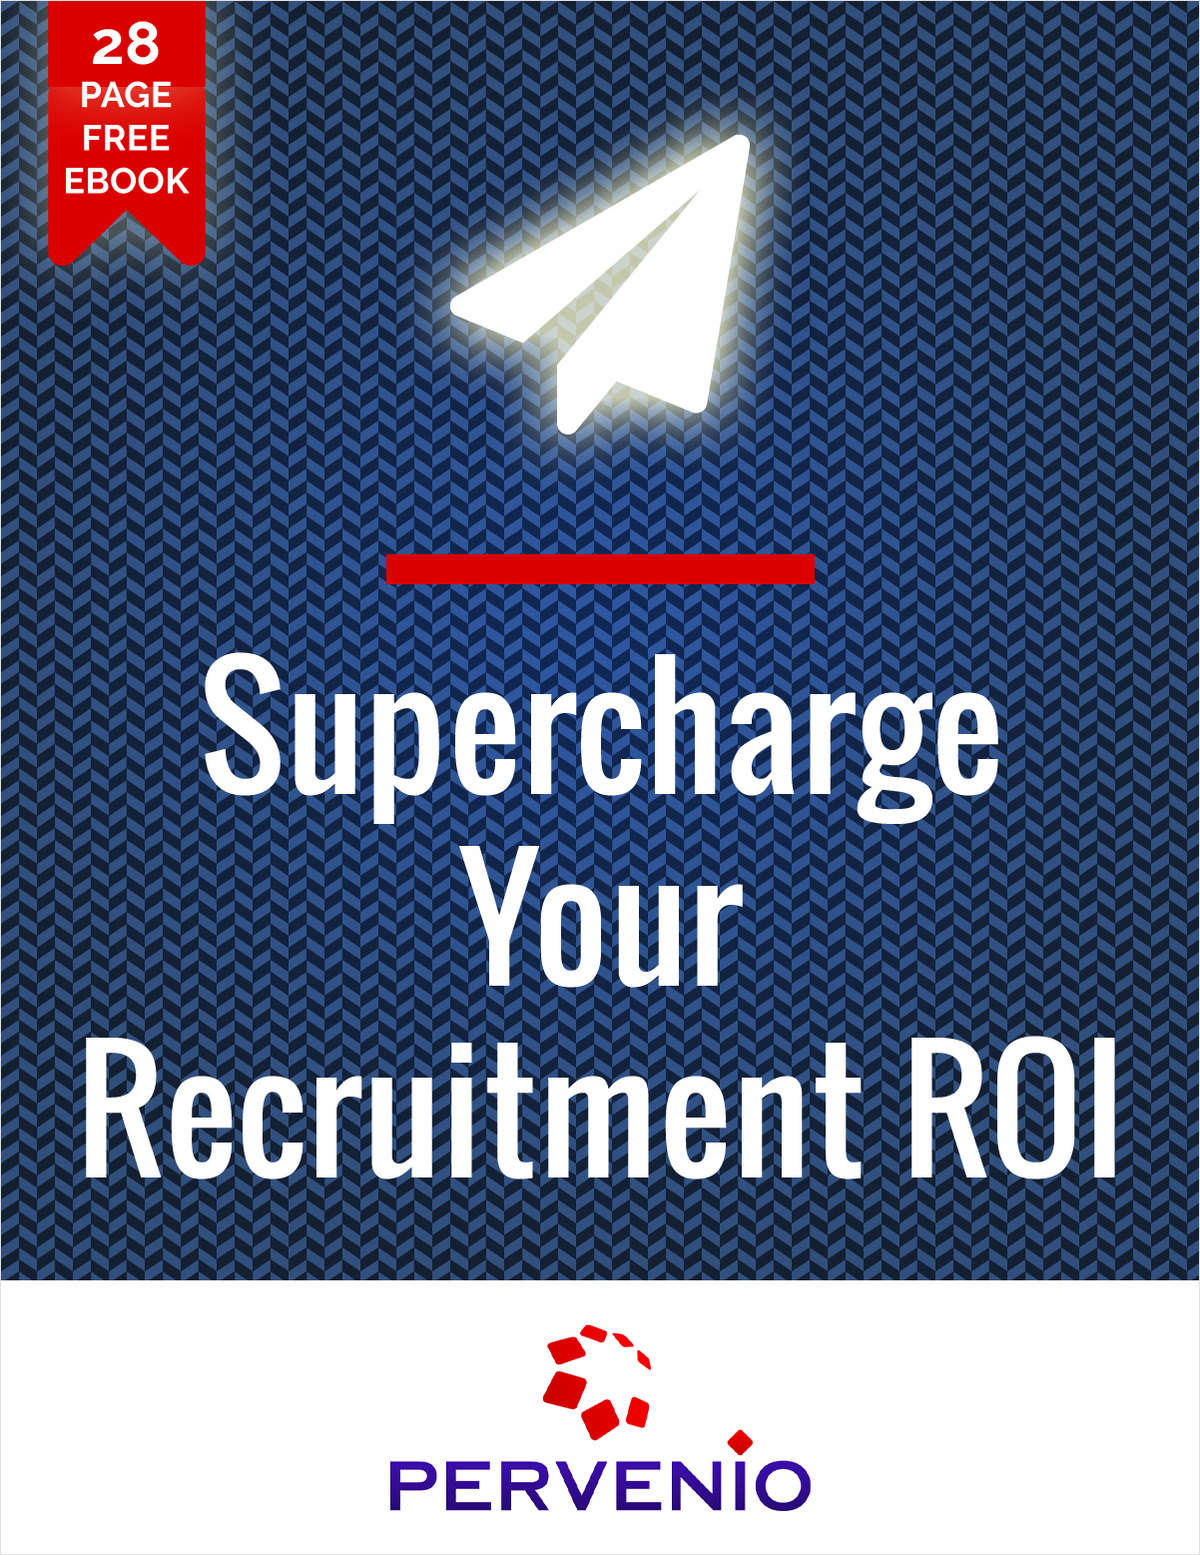 How To Overcome Recruitment Challenges & Supercharge Your Recruitment ROI